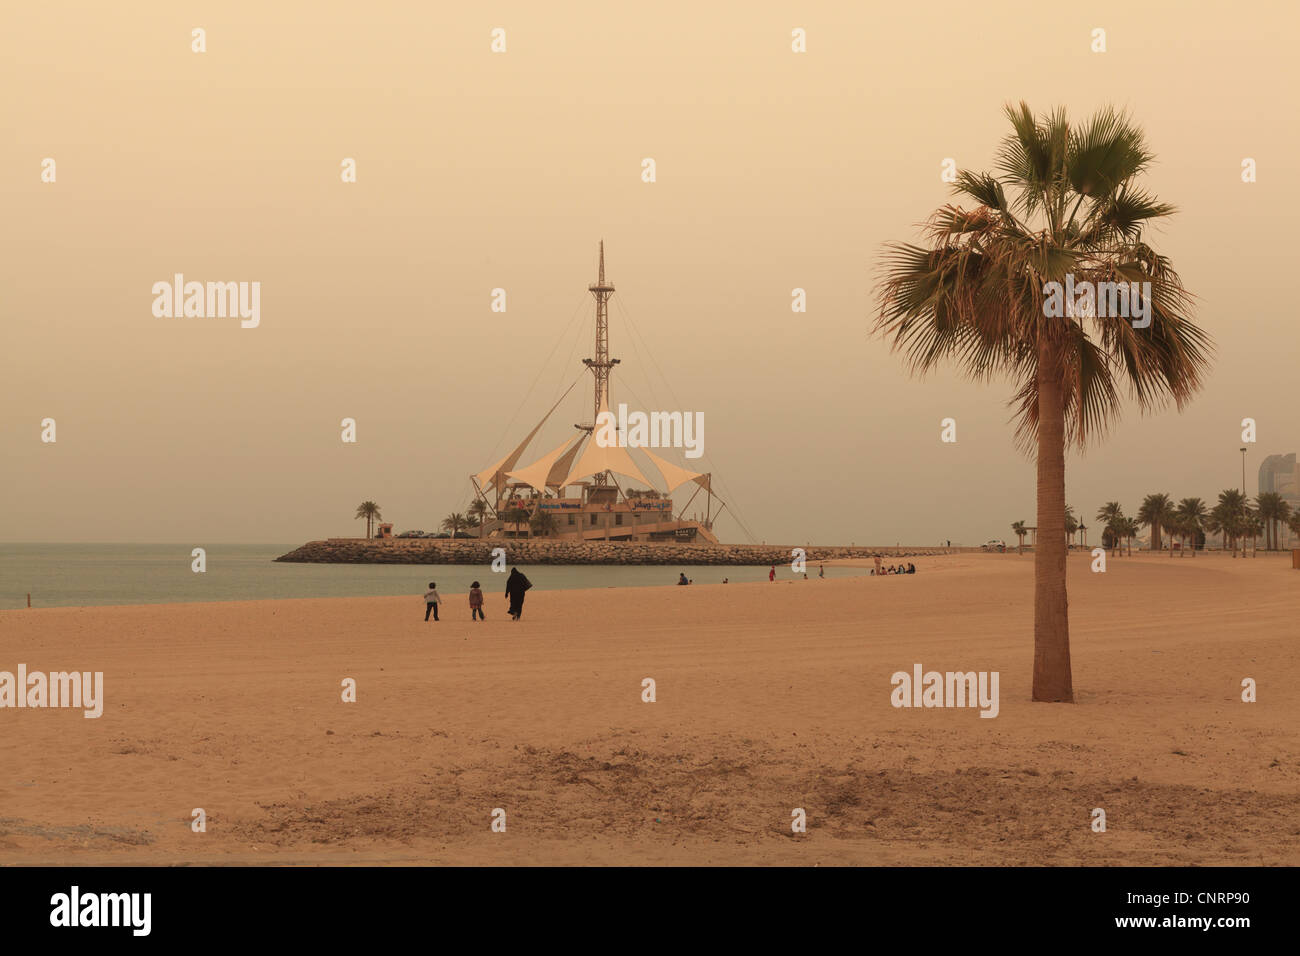 A beach in Kuwait City with the Marina Waves building in the background - Stock Image